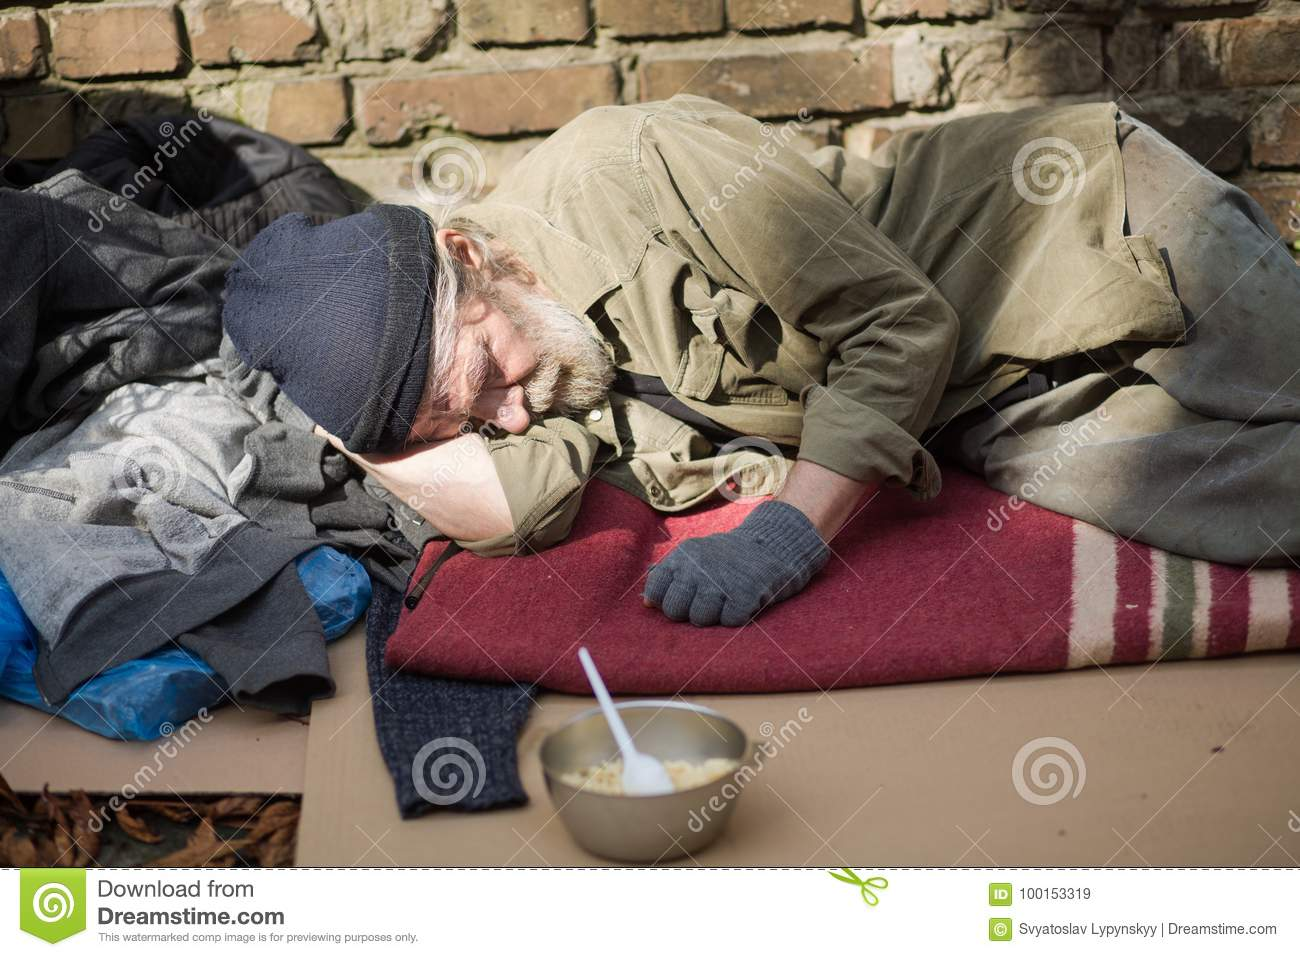 3ae5e05d13 Tired Homeless Old Man Sleeping On Cardboard In The Street. Stock ...